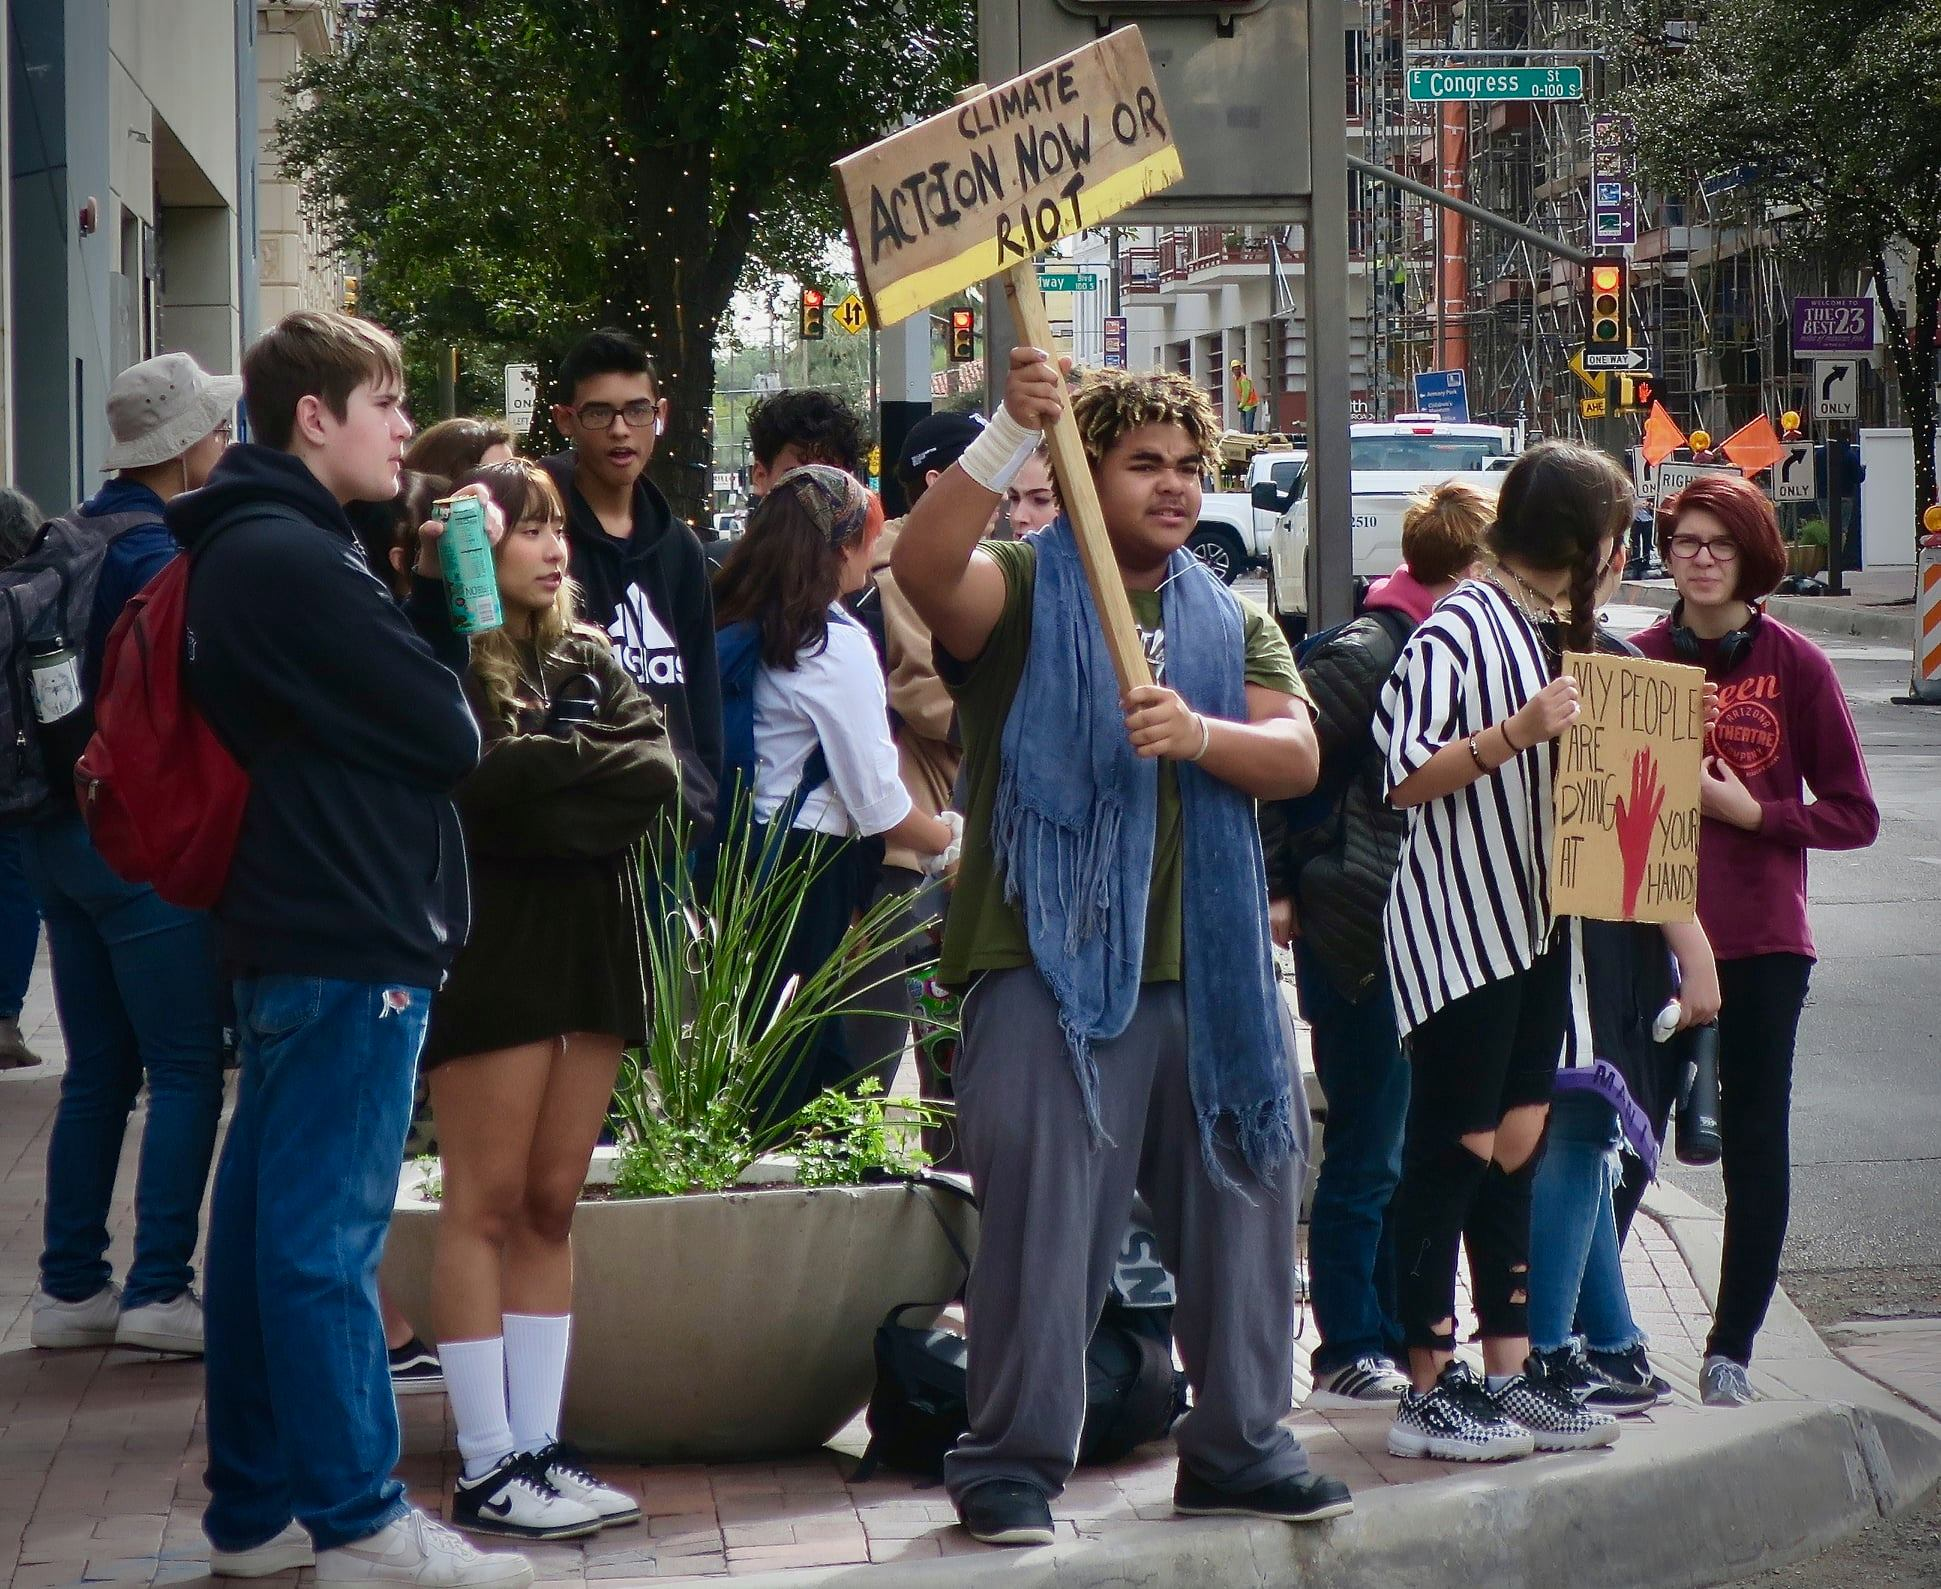 Caption: Cougar holds a sign at a climate protest, Credit: City High School